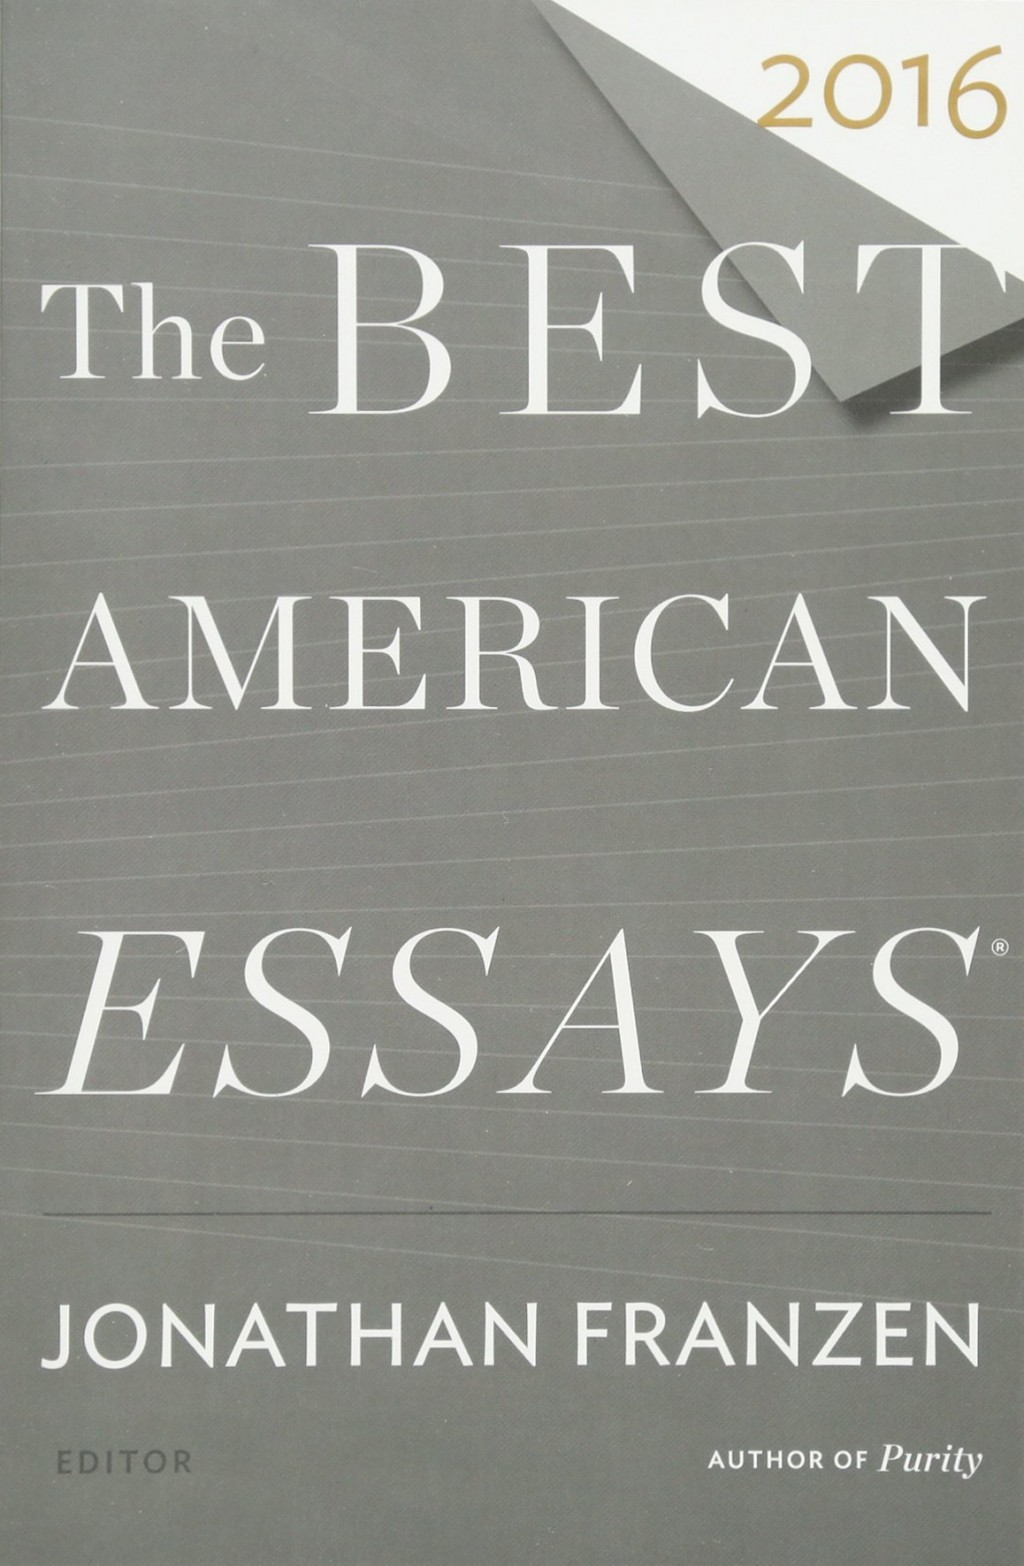 005 Best American Essays 71a6bhsgsdl Essay Striking 2017 Table Of Contents The Century Pdf Large